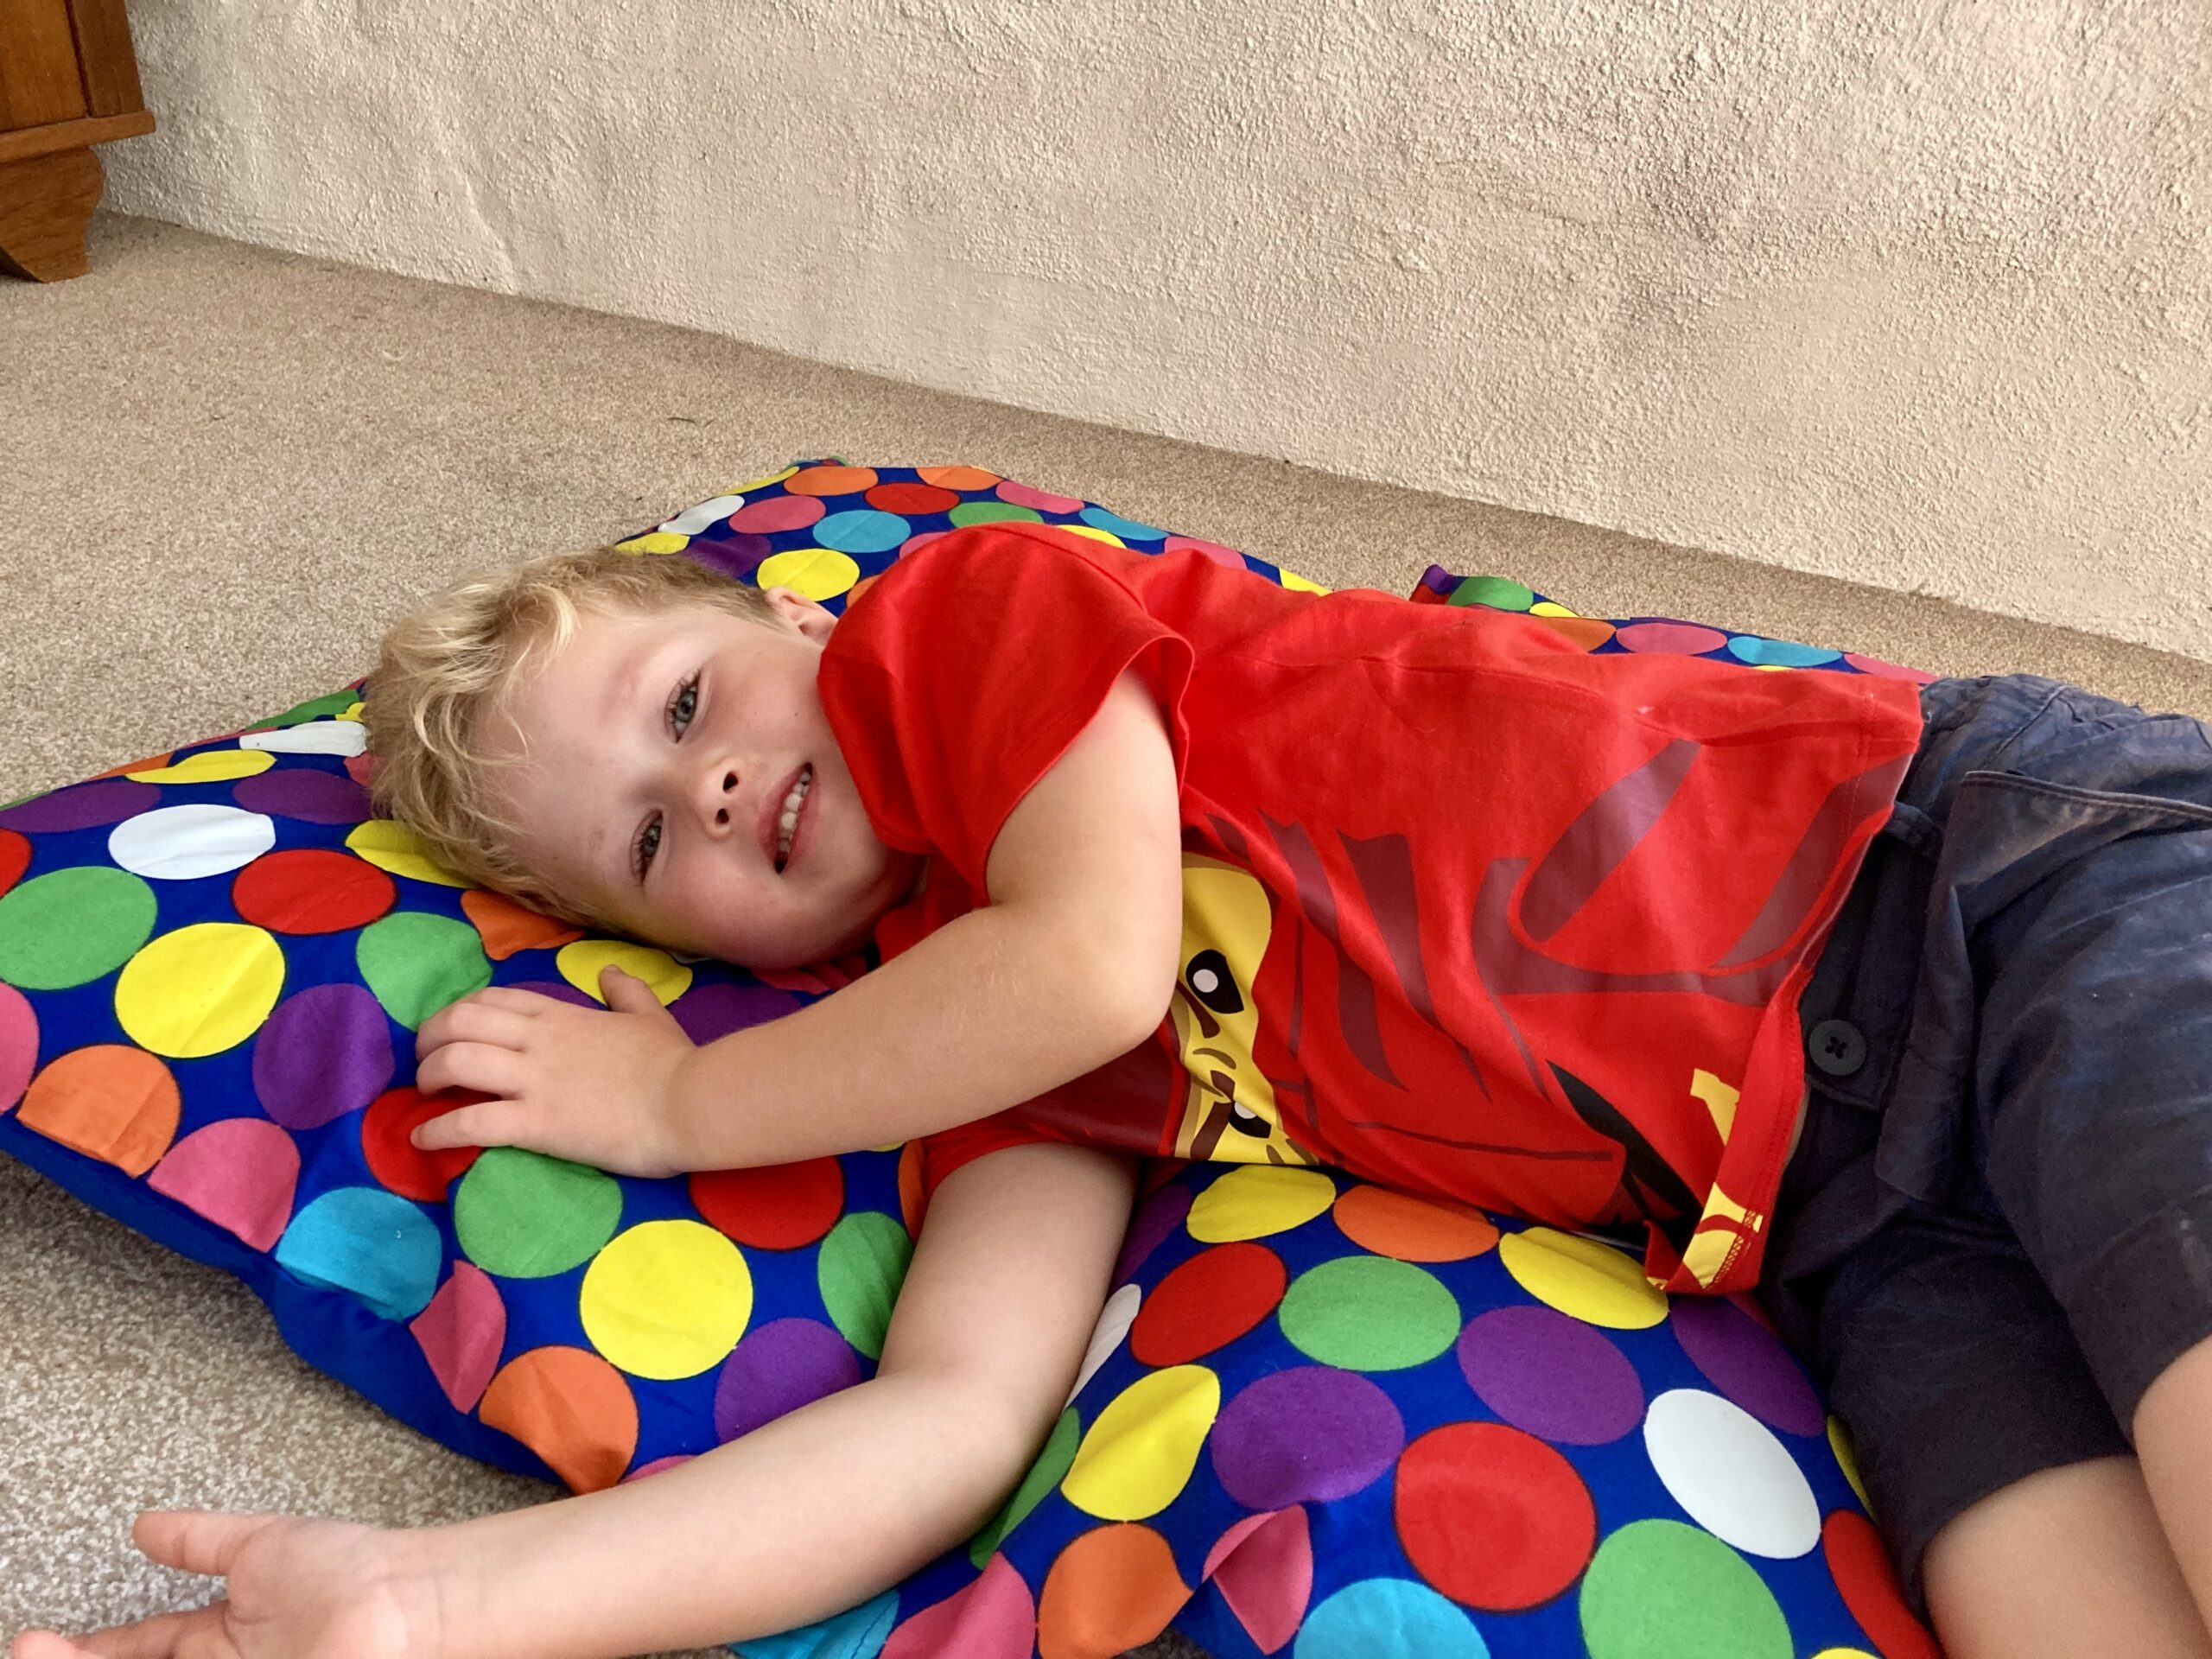 Lucas led on the bright spotty secret bed